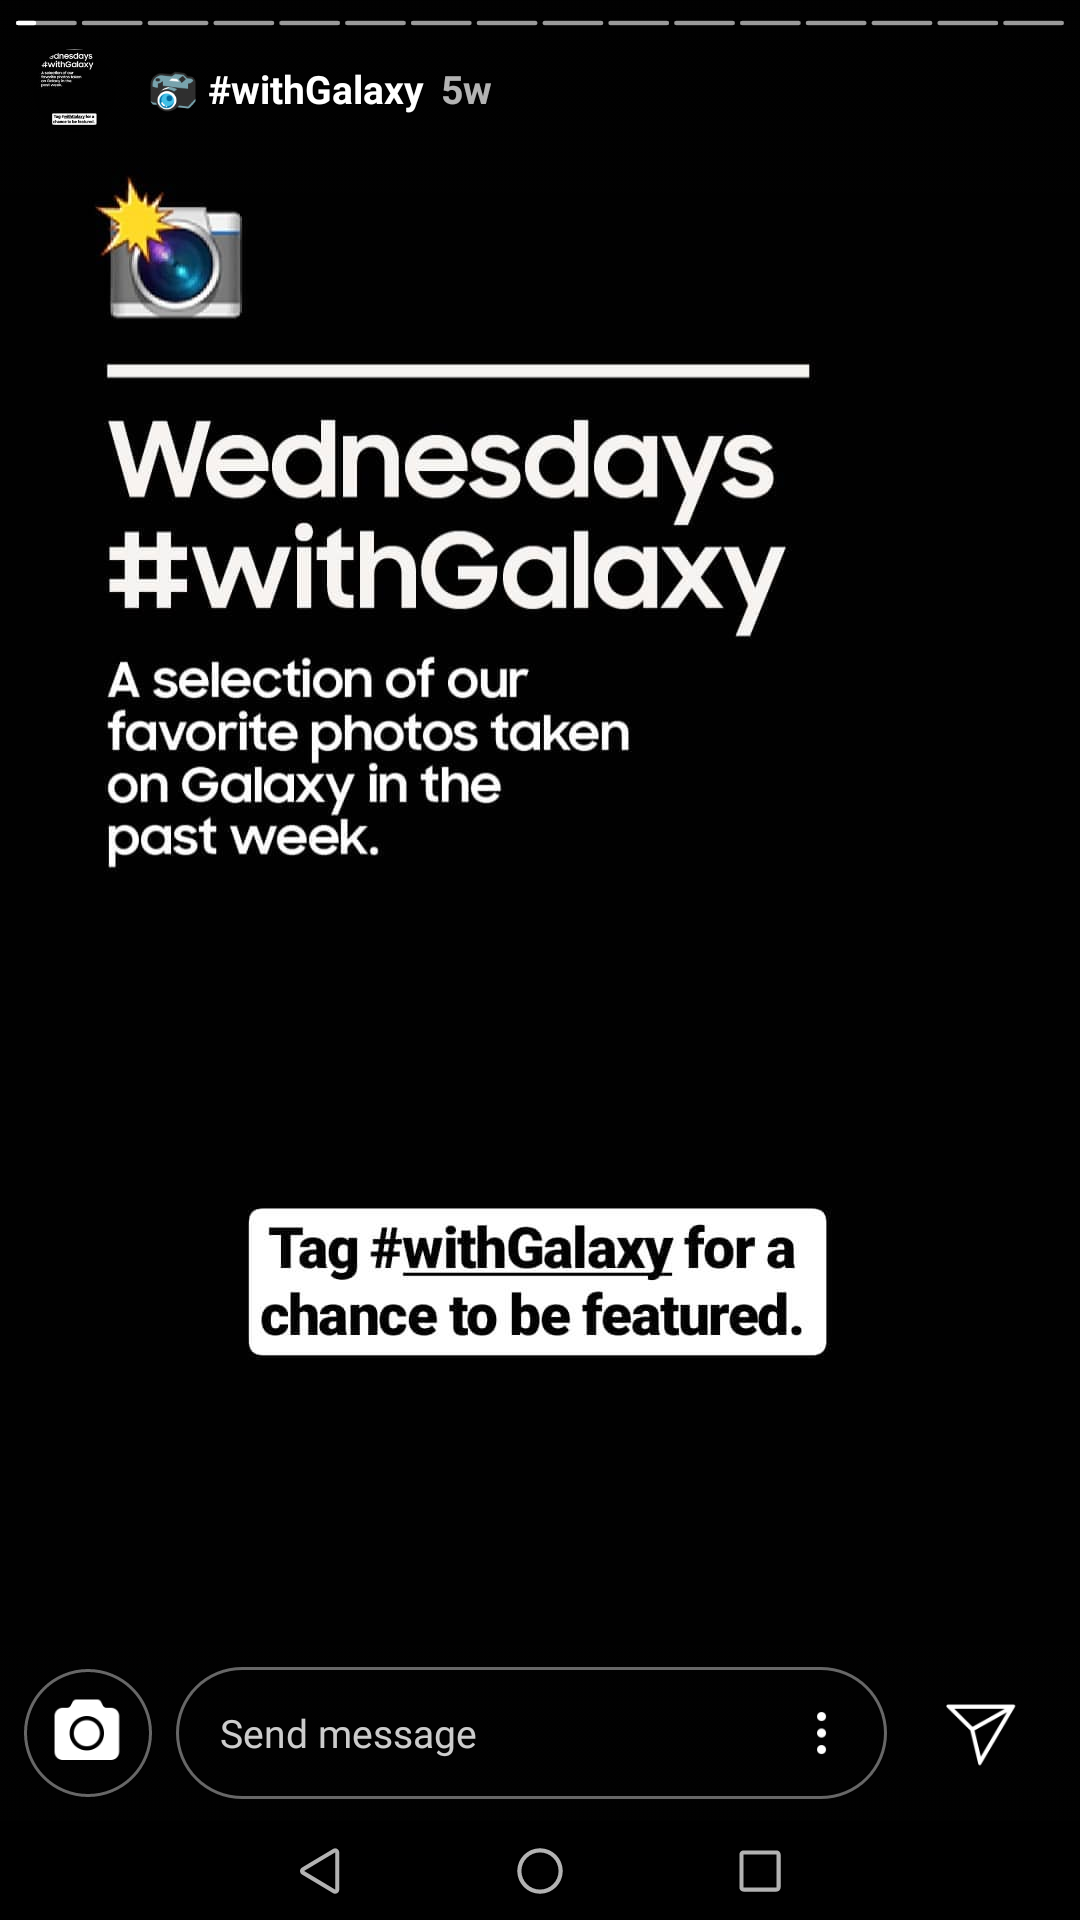 Samsung uses their Stories hashtag to encourage customer photos